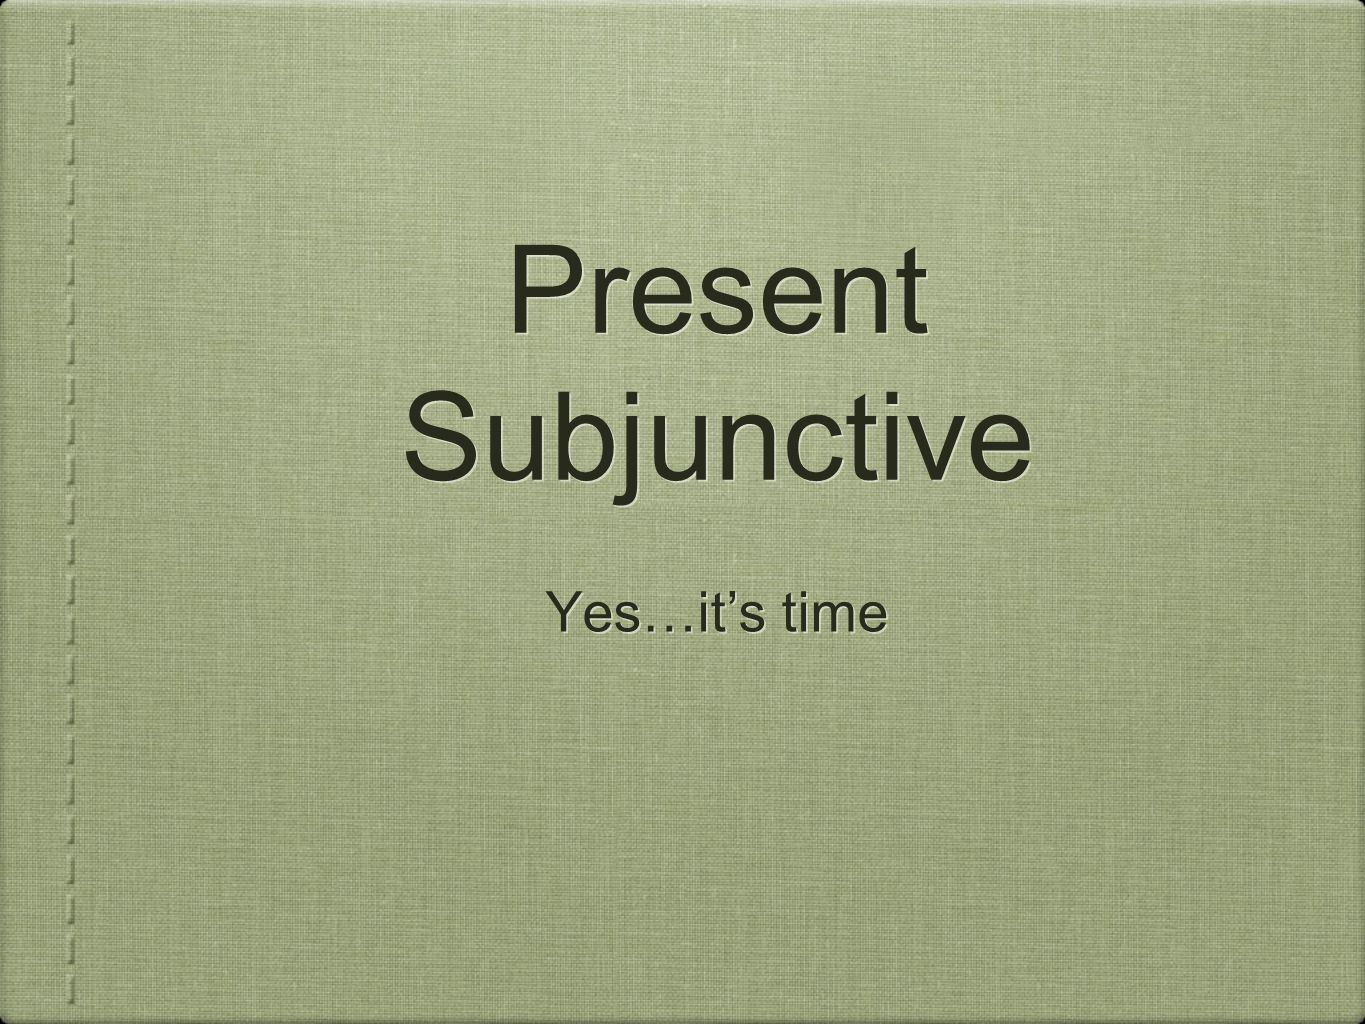 Present Subjunctive Yes…it's time